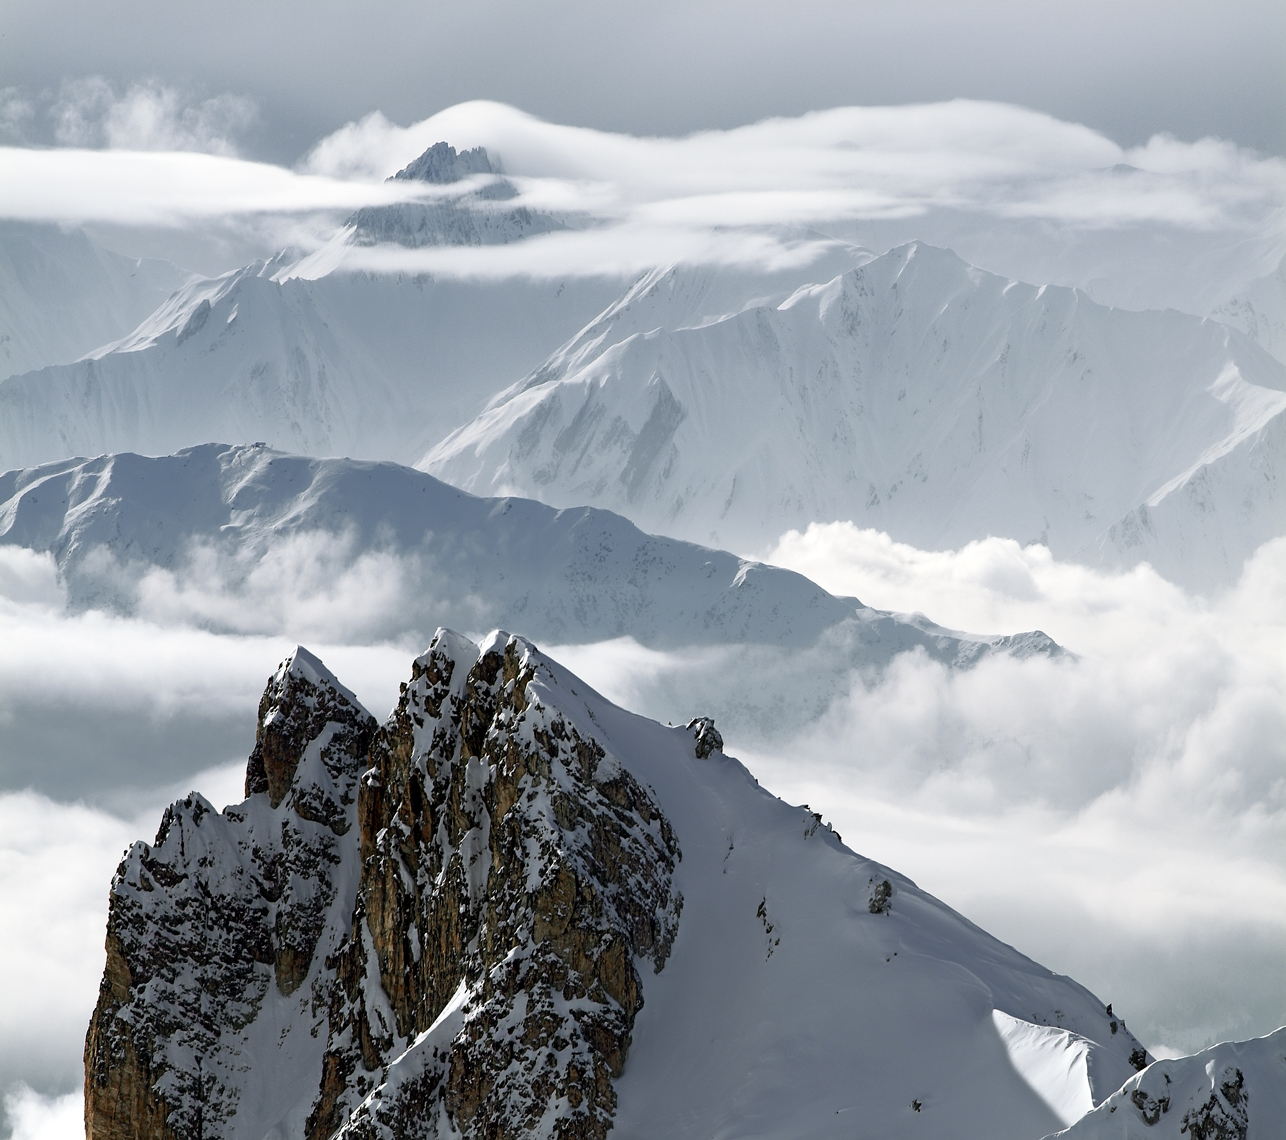 Jon Wyatt Photography - Winter Peaks surrounded by cloud in La Plagne backcountry